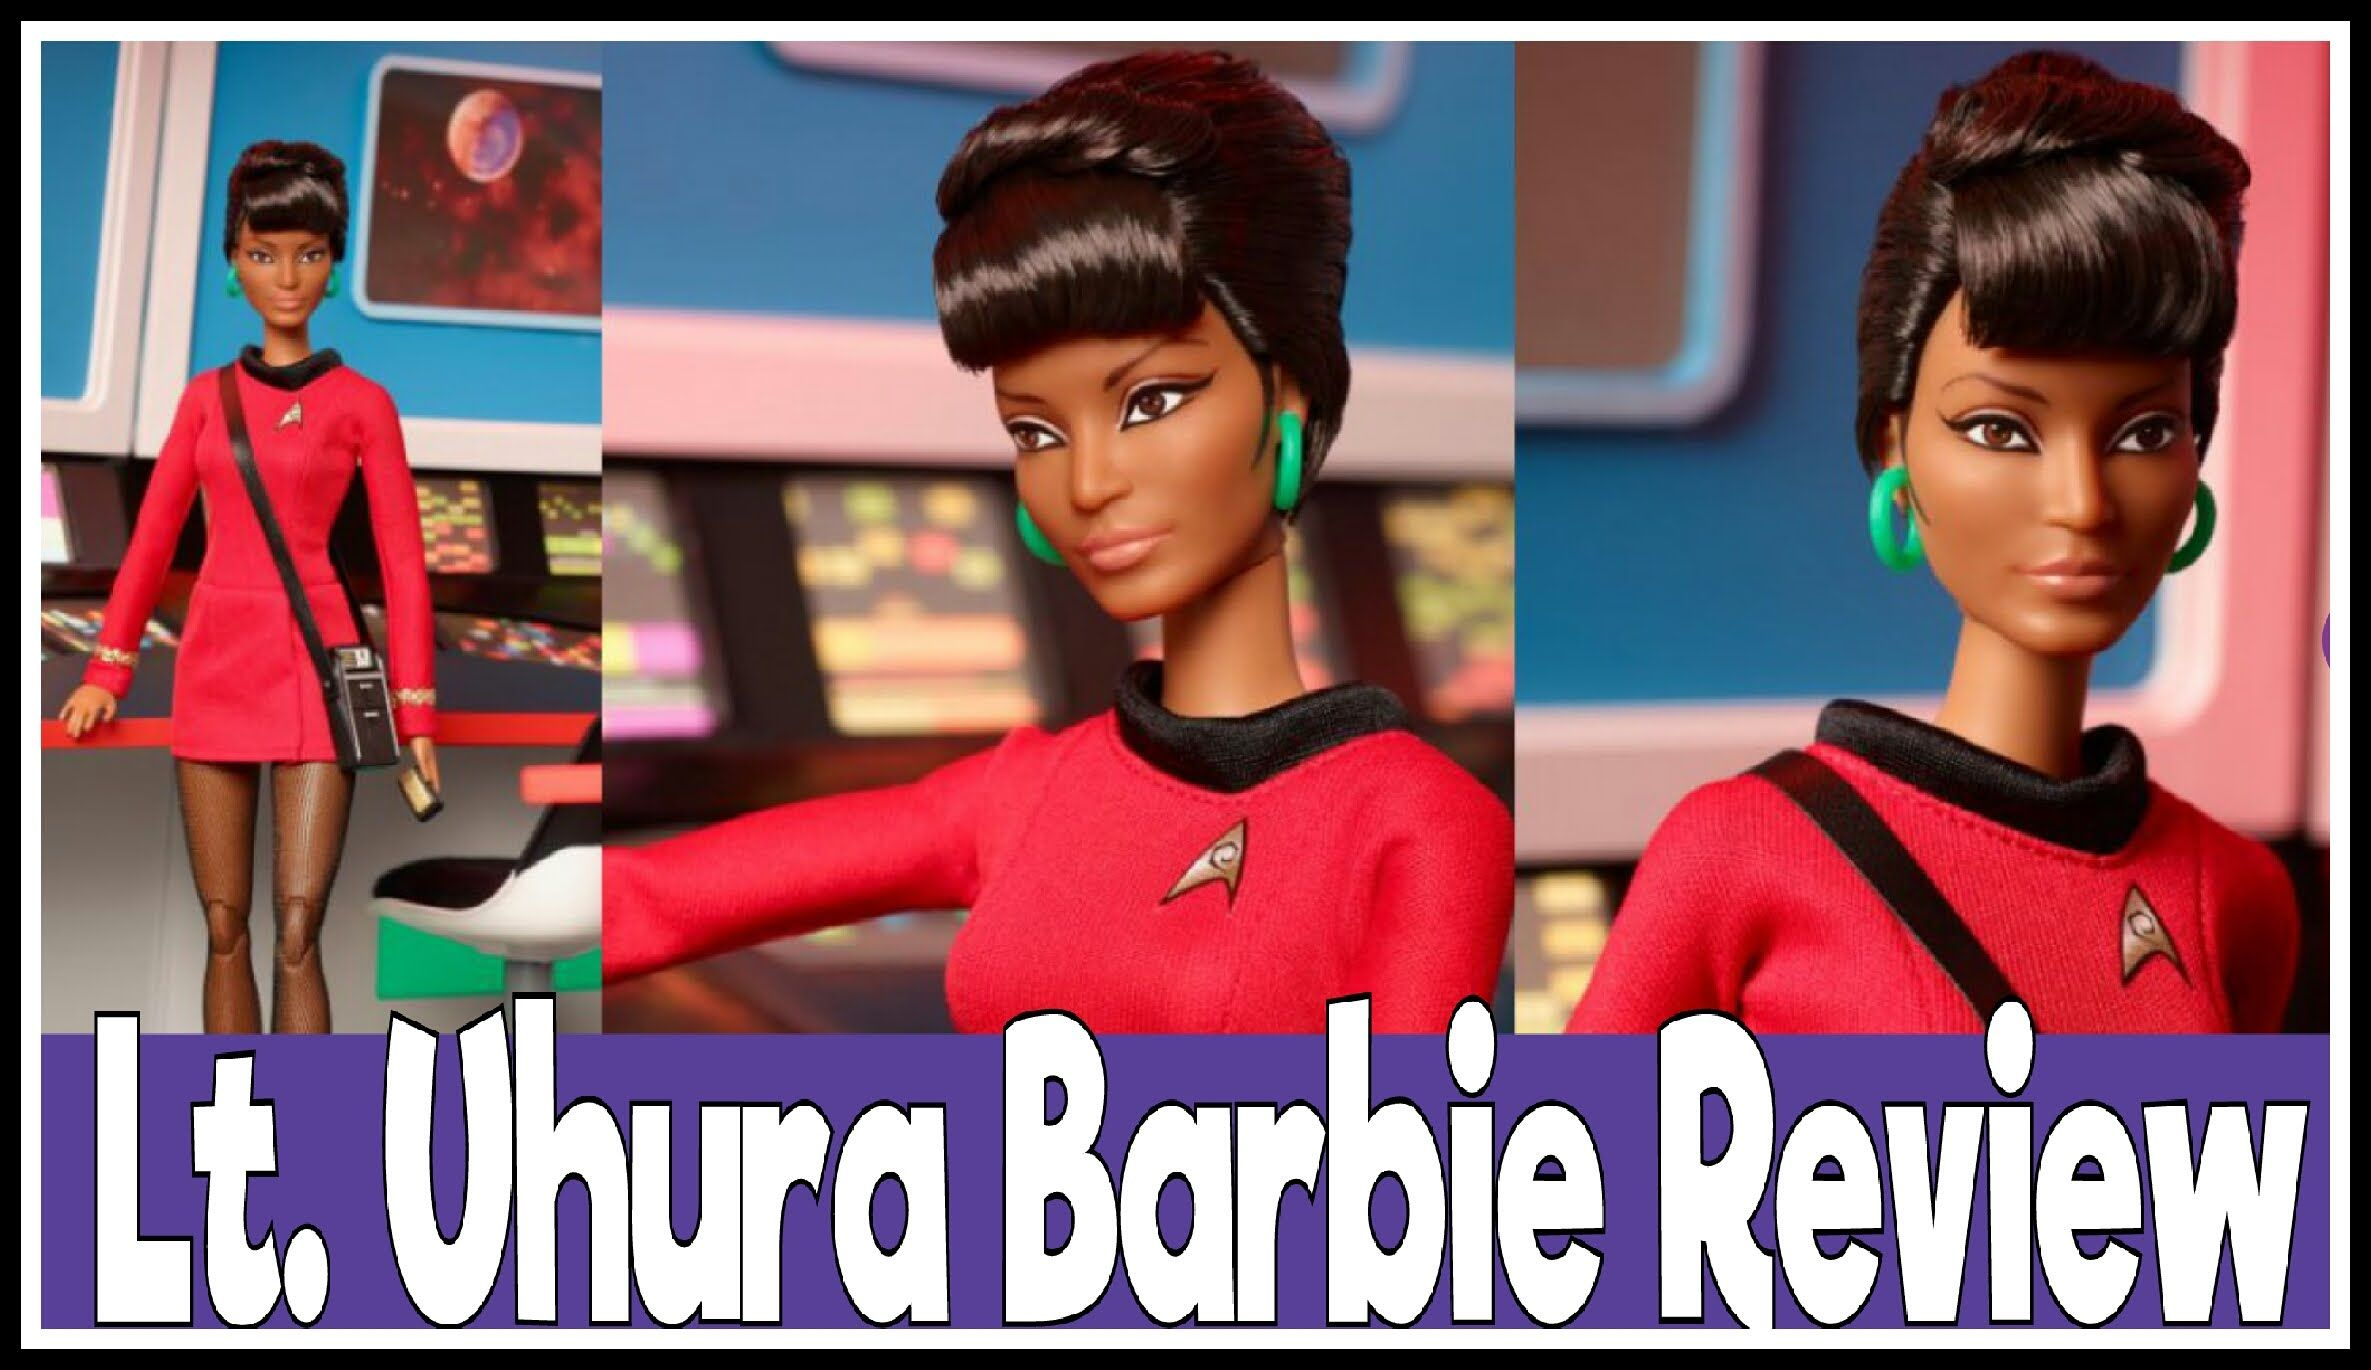 The barbie doll turns